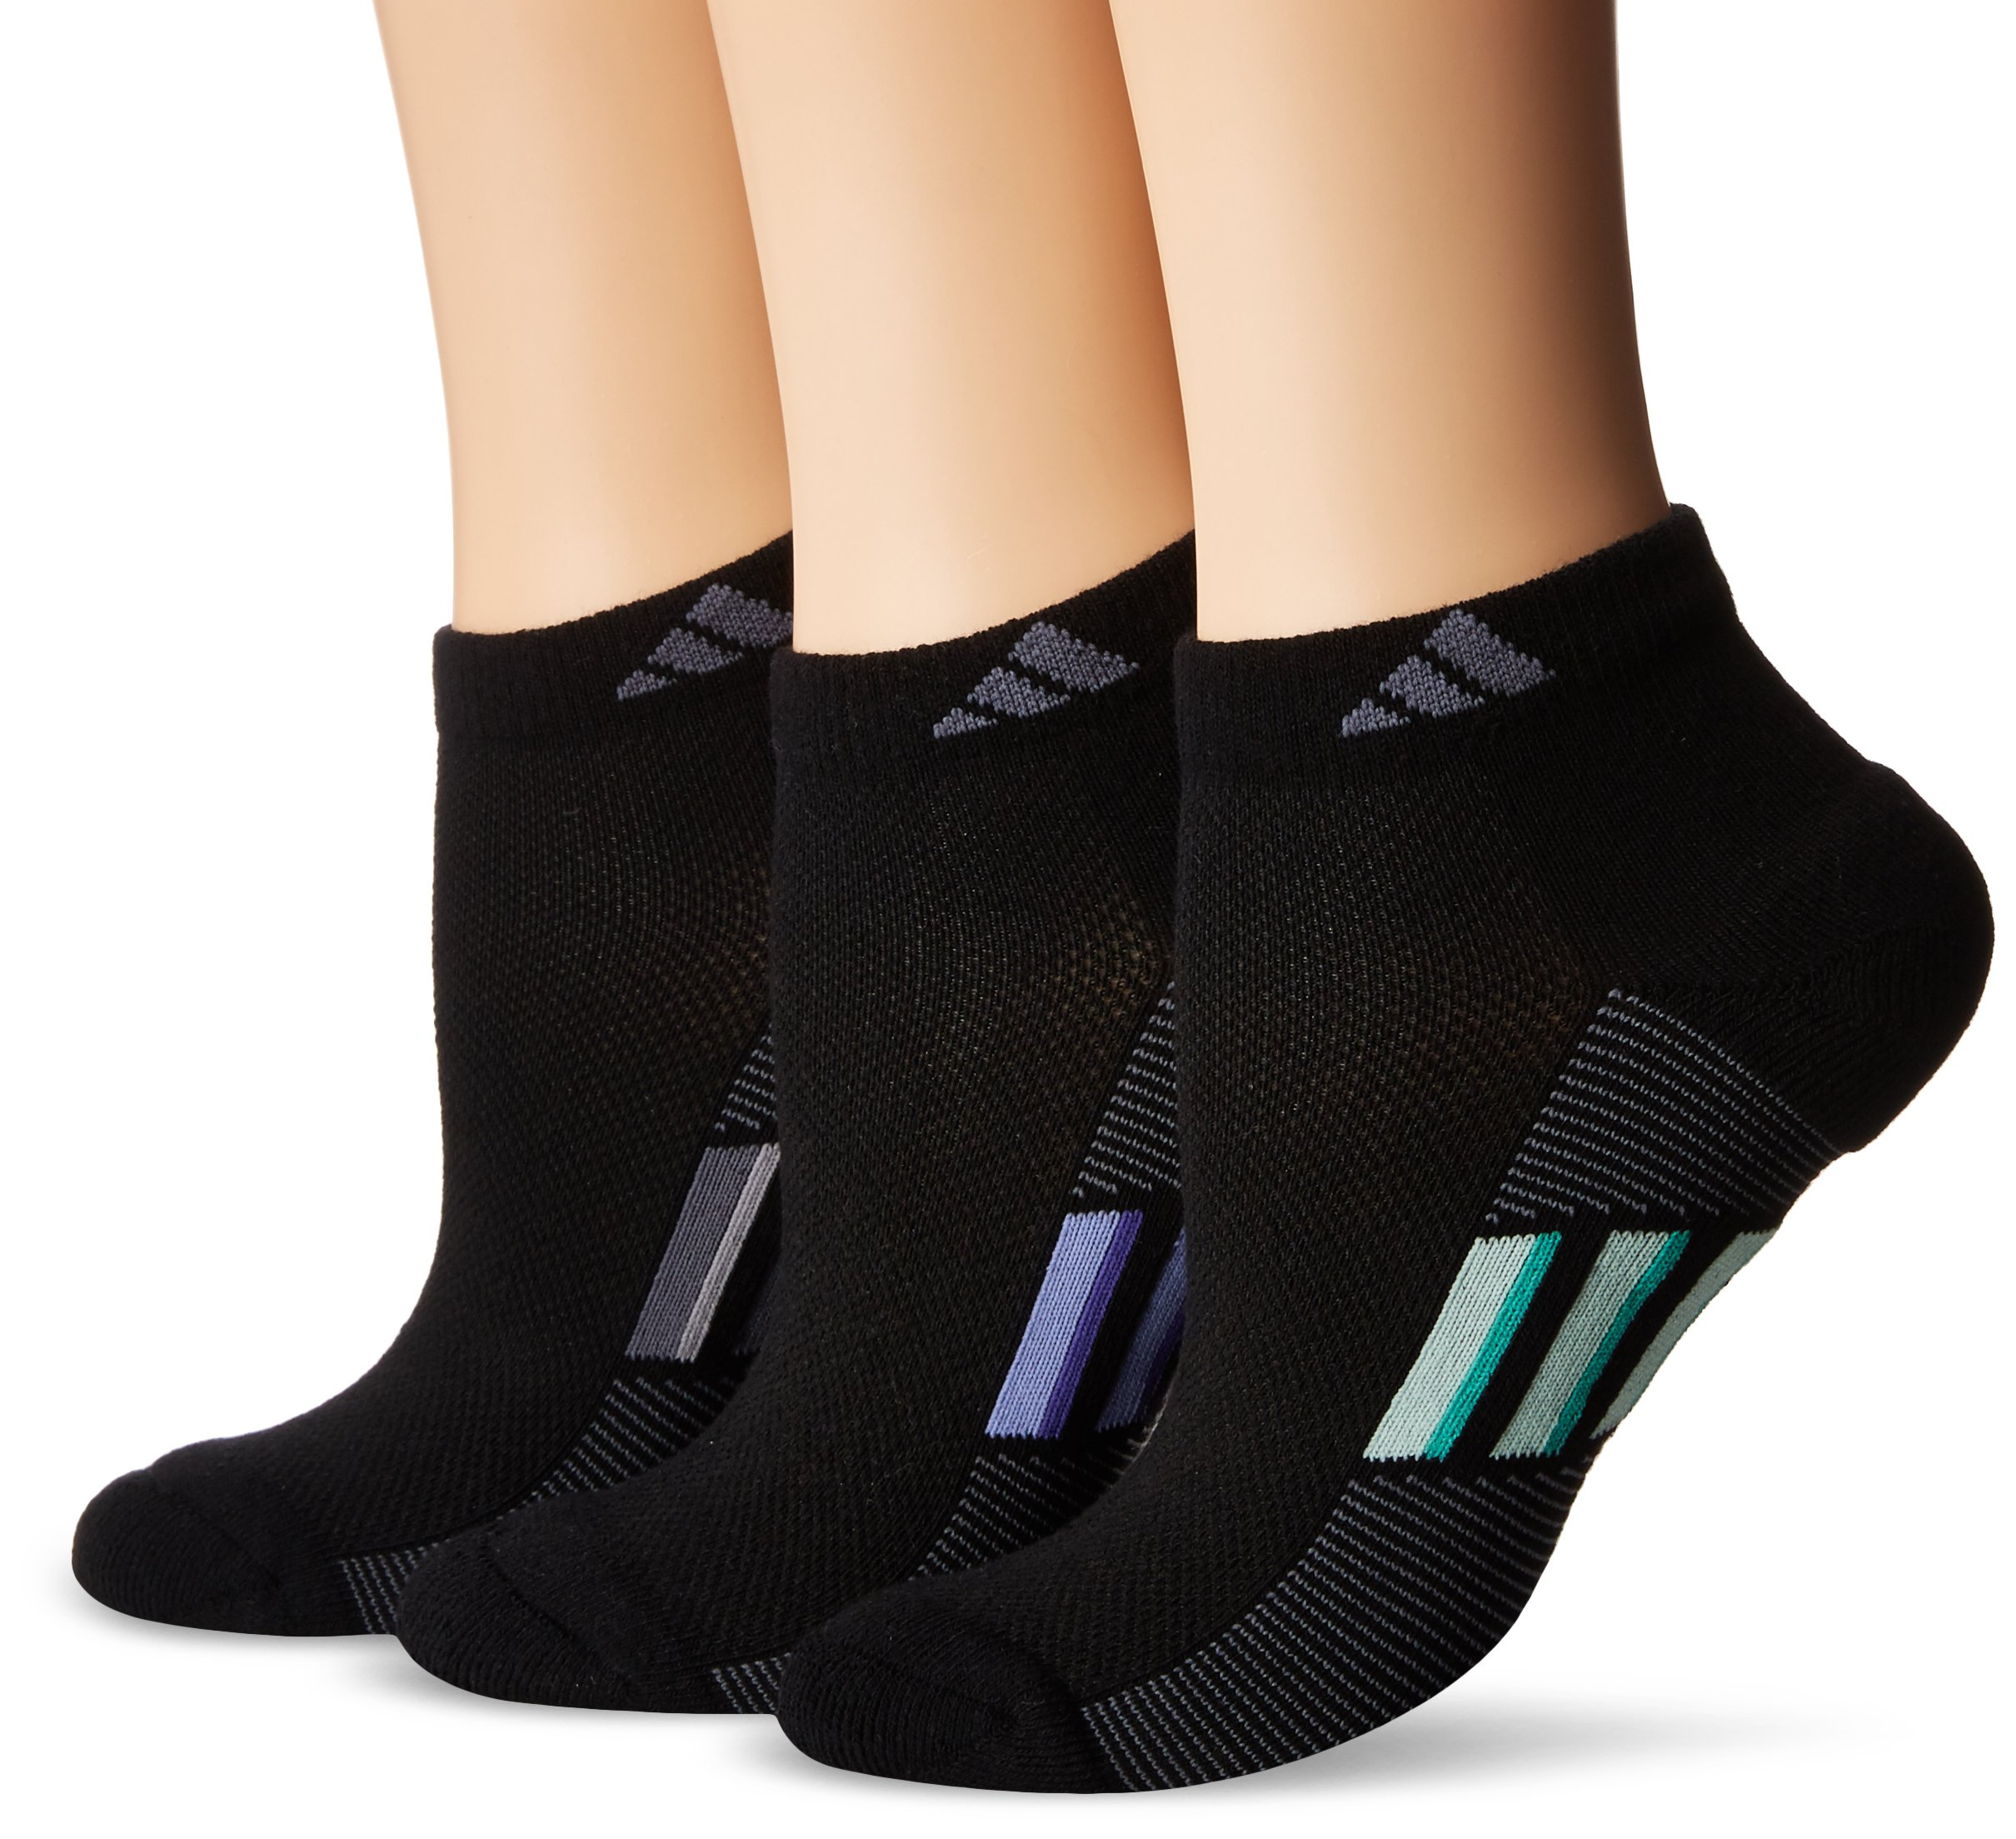 adidas Women's Climacool Superlite Low Cut Socks (3-Pack) by adidas (Image #1)